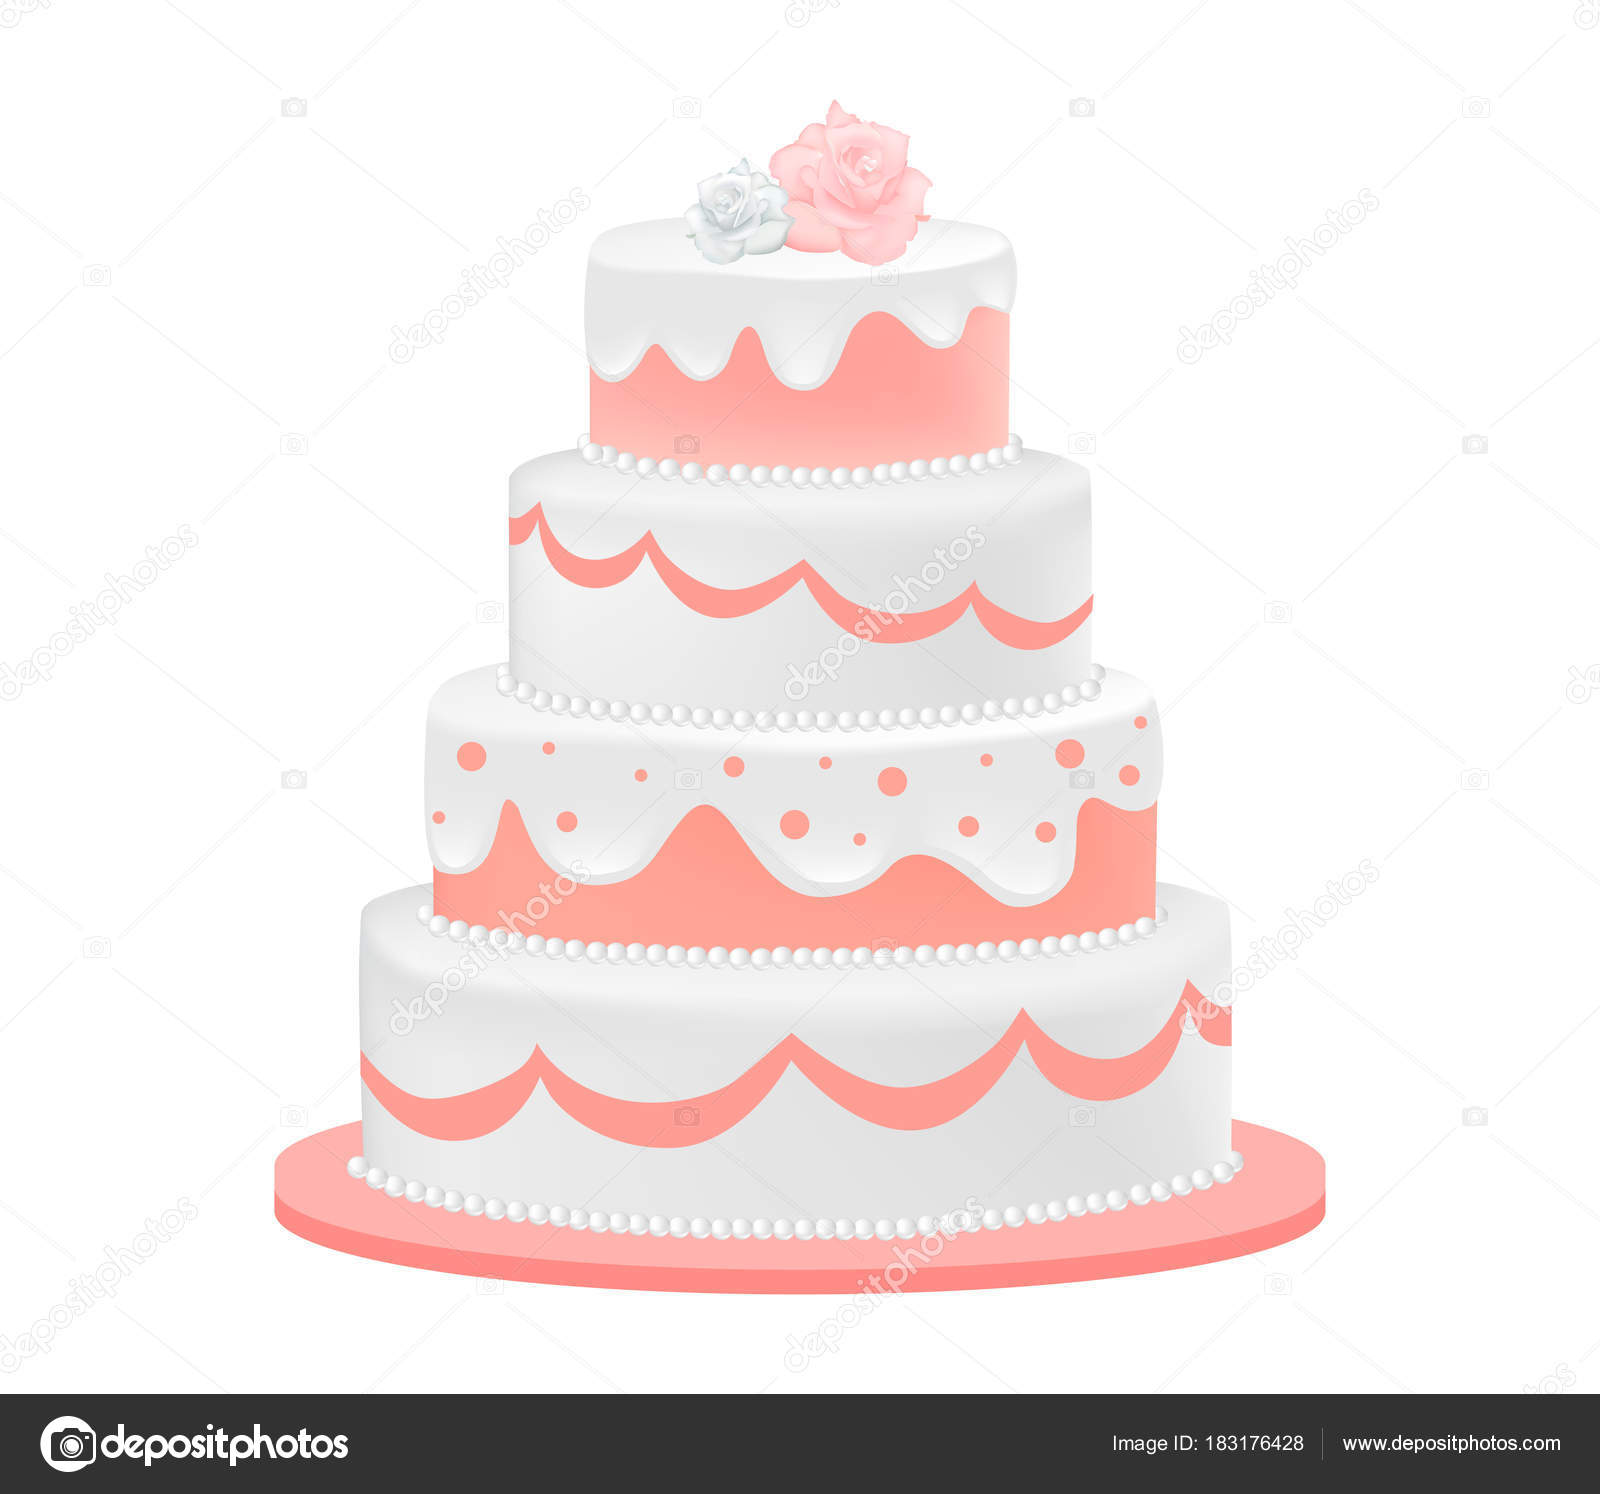 Wedding Cake Decorated With Roses Stock Vector Delices89 183176428